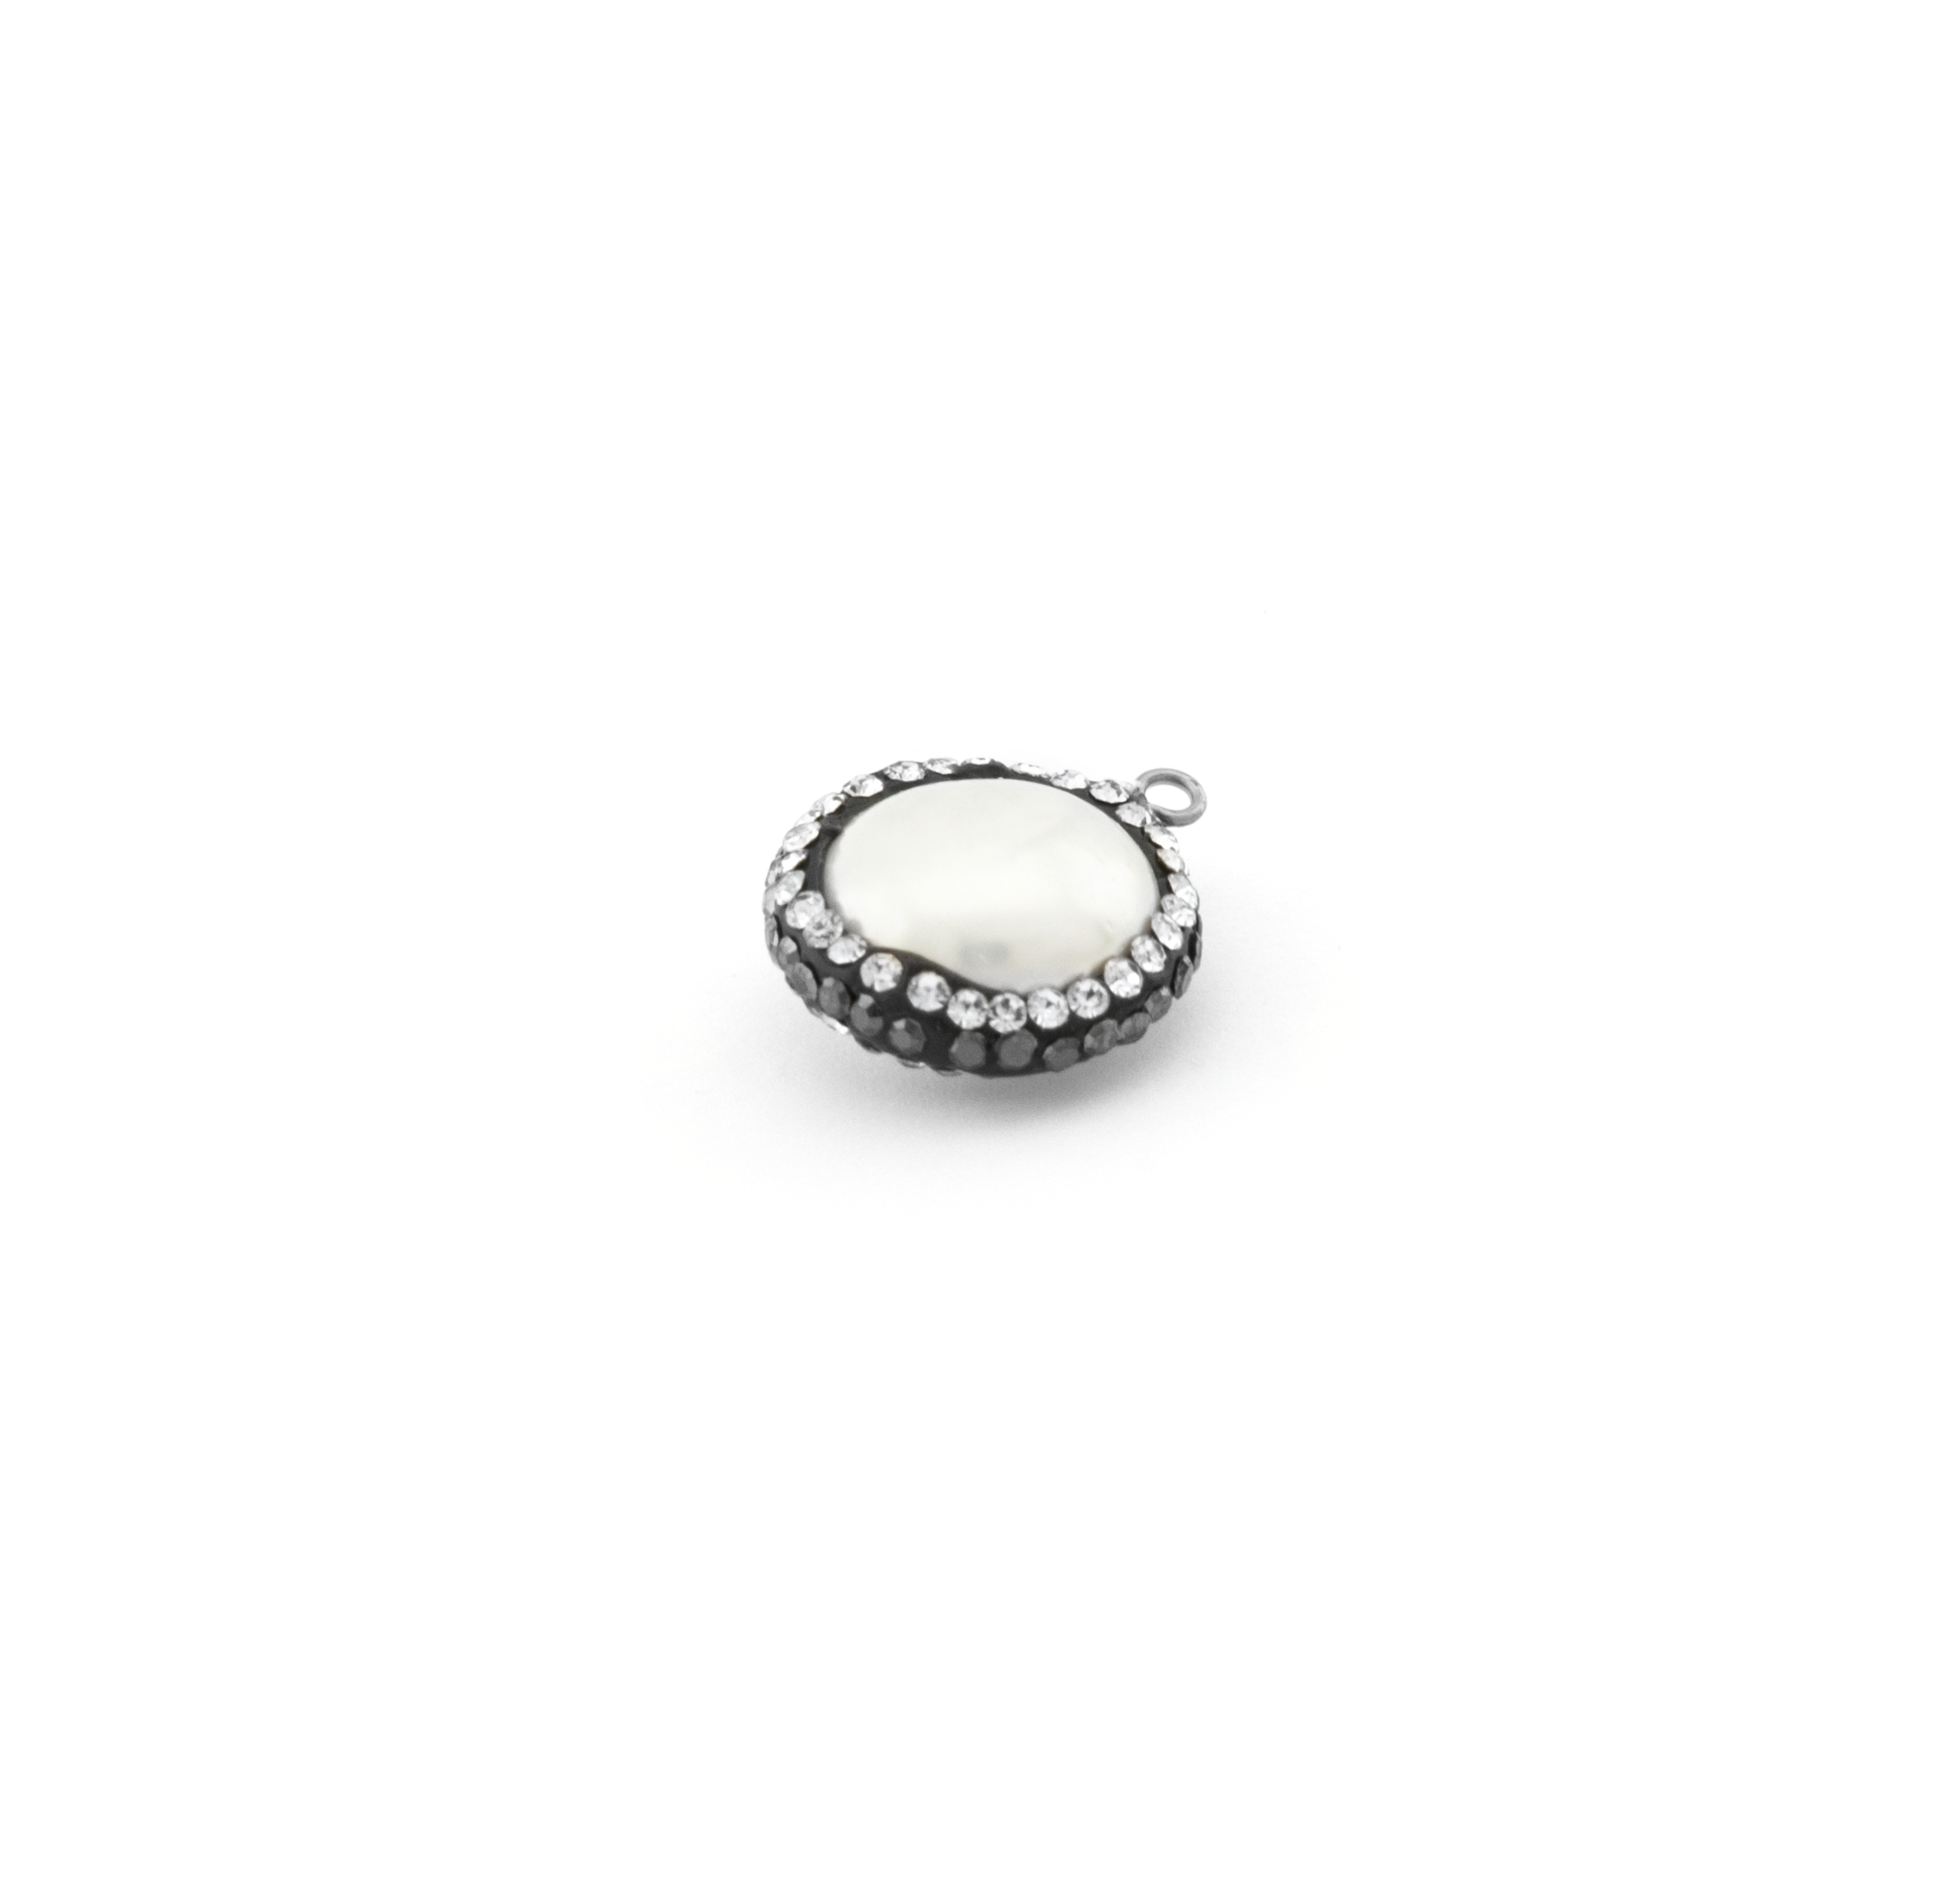 FRESH WATER PEARL WITH STRASS 15mm